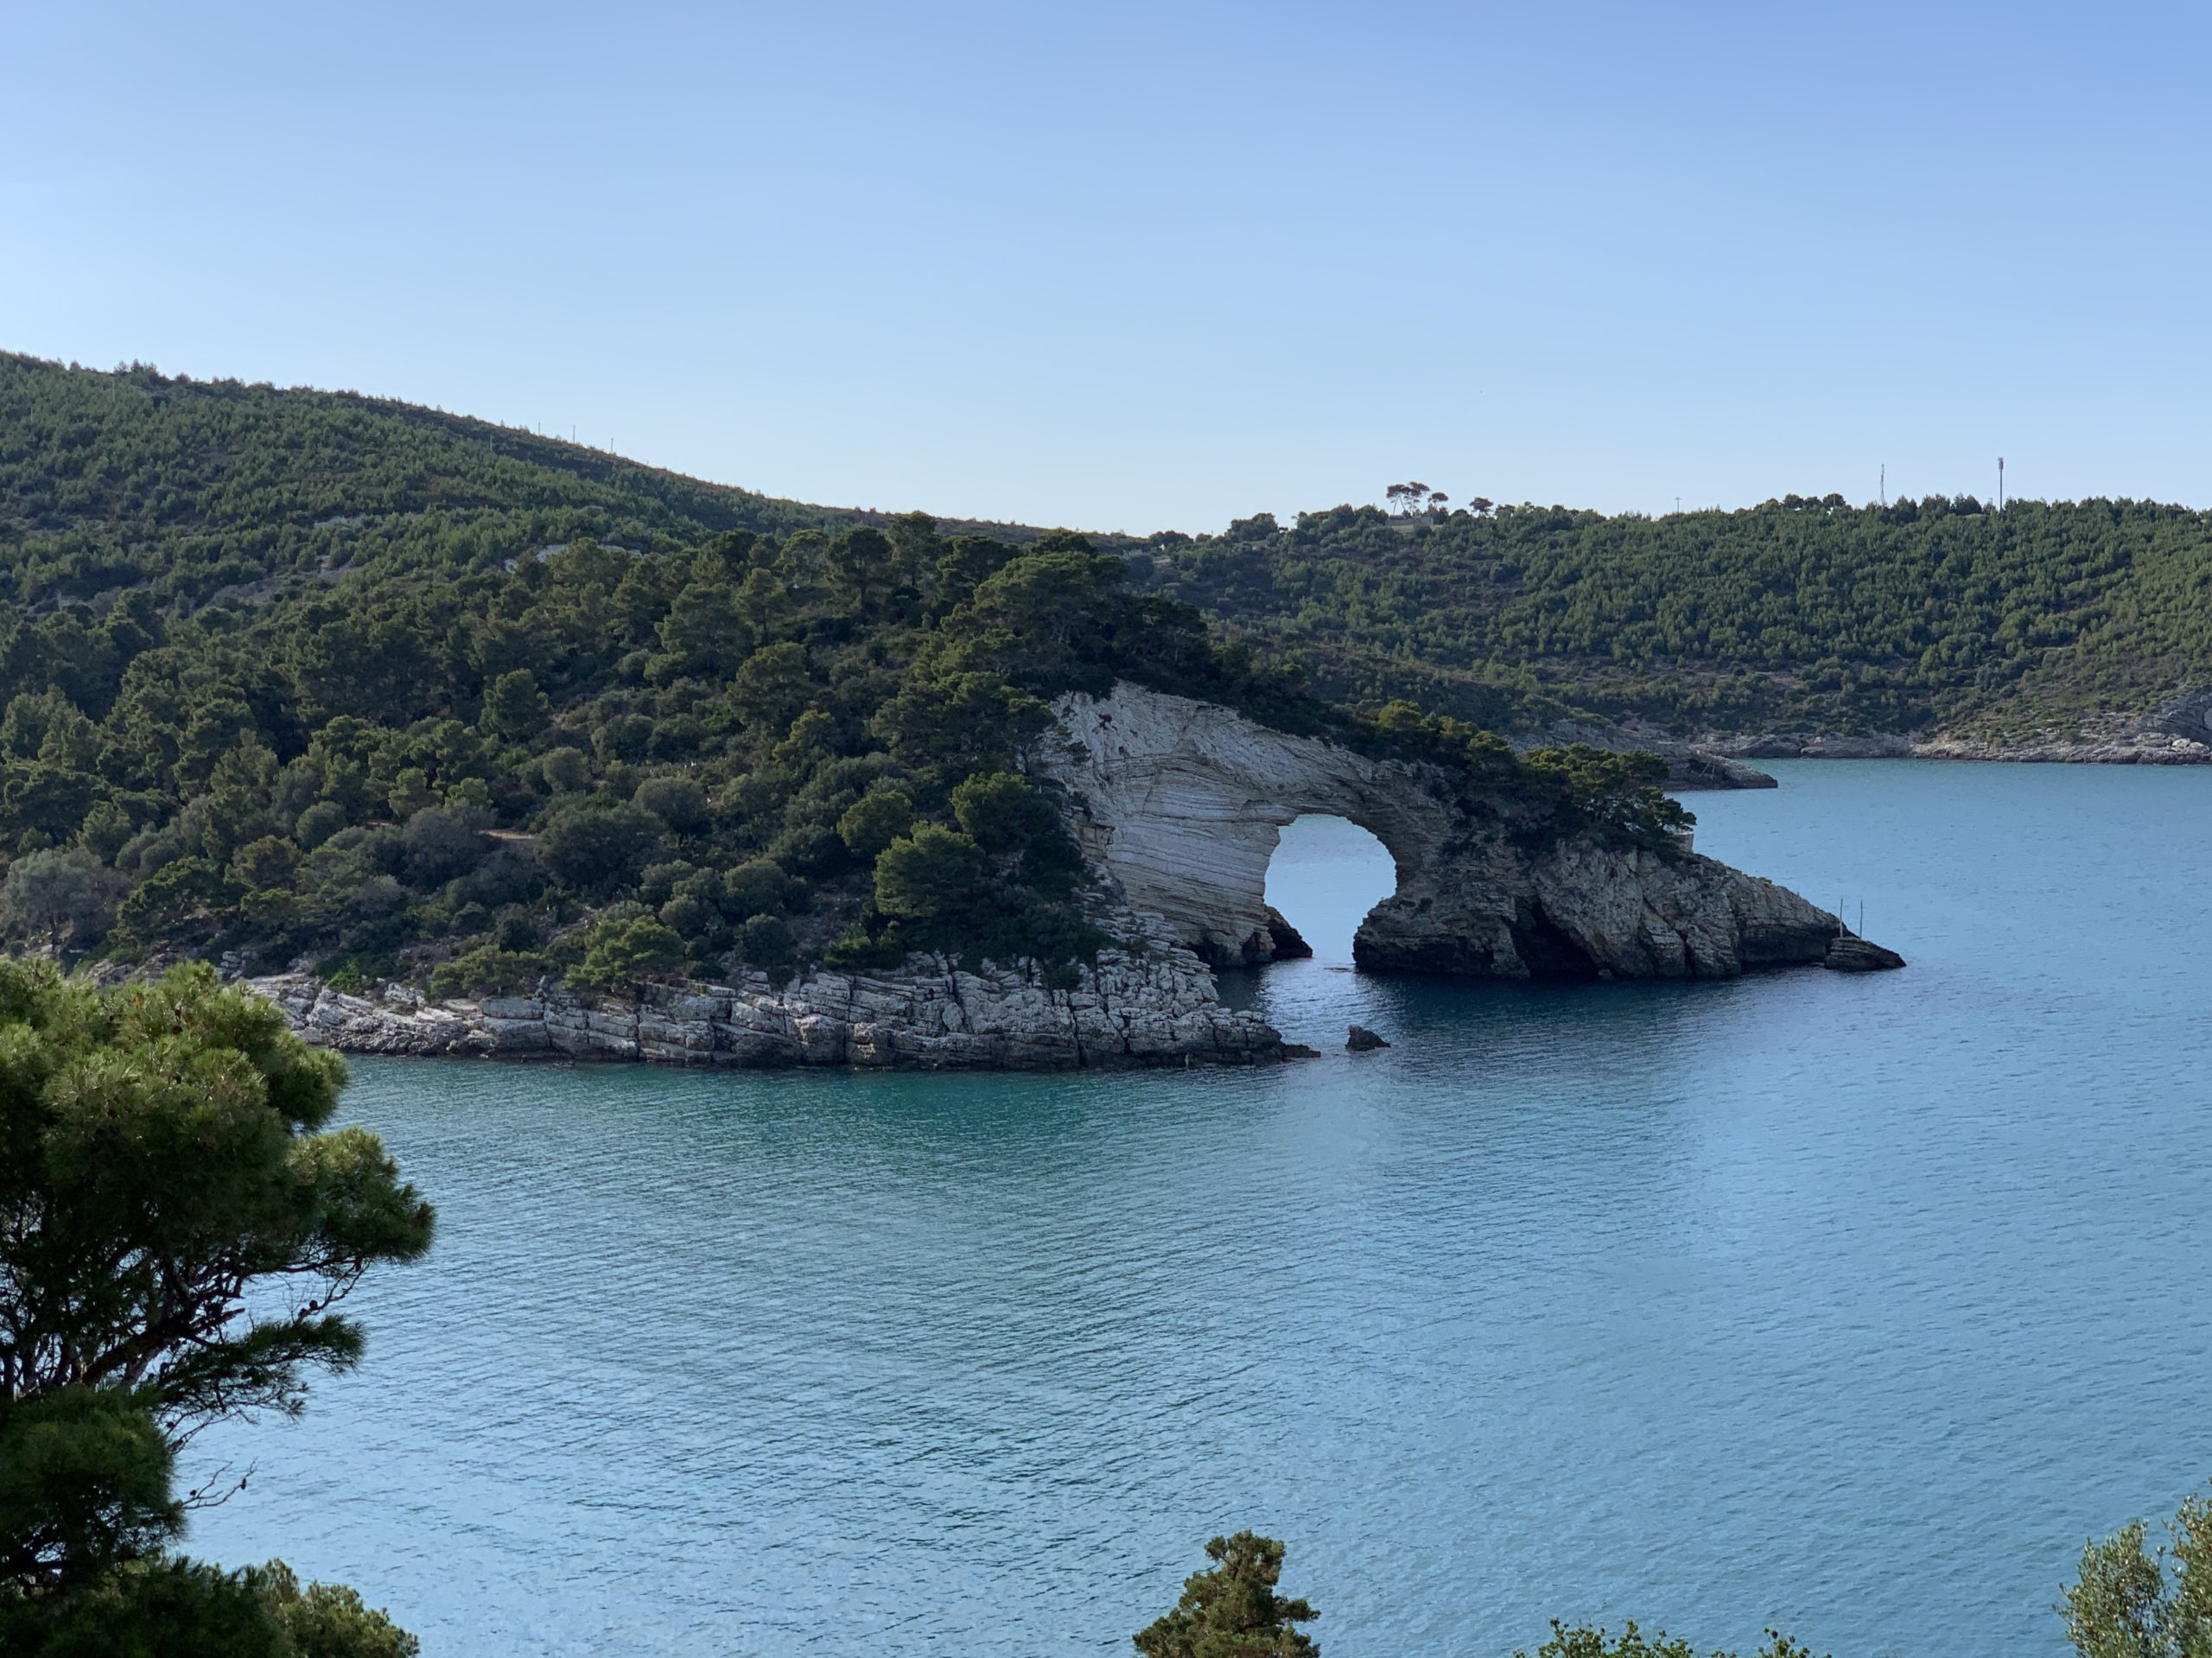 The stunning Gargano coast with sea caves, stacks and coves.